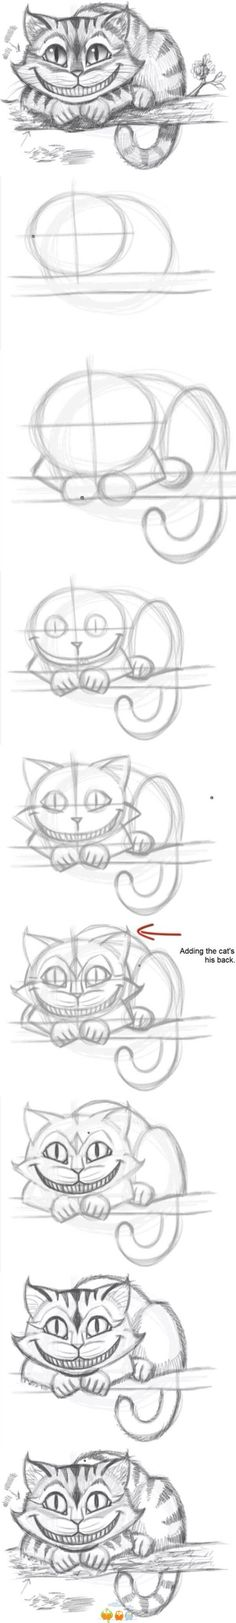 Meine Disney Zeichnung - Cheshire Cat from Alice In Wonderland. How to draw the Cheshire Cat - Logischesmädchen 44 - Pin Disney Drawings, Cool Drawings, Drawing Sketches, Drawing Ideas, Drawing Tips, Drawing Disney, Sketching, Sketch Ideas, Drawing Stuff